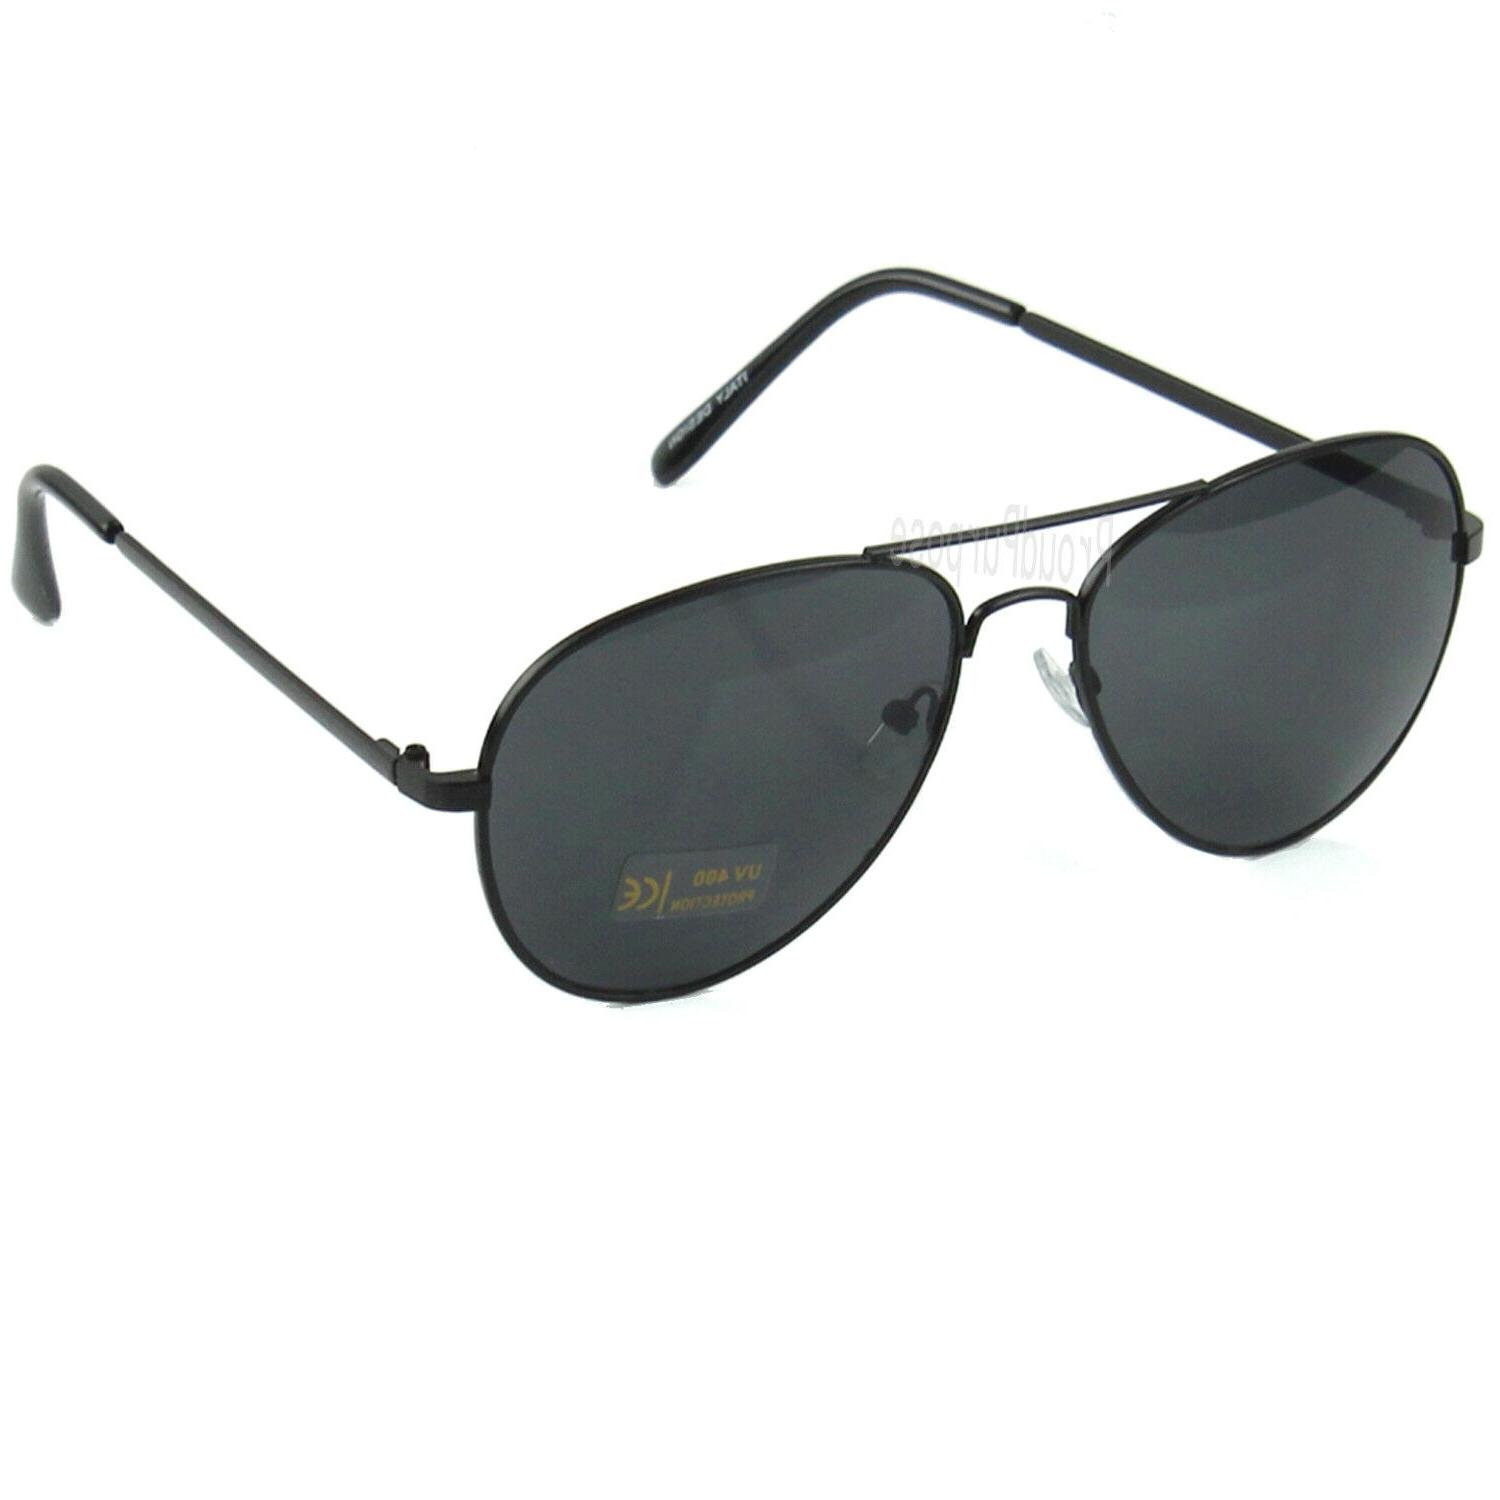 Fashion Men's Sunglasses Black Metal Vintage